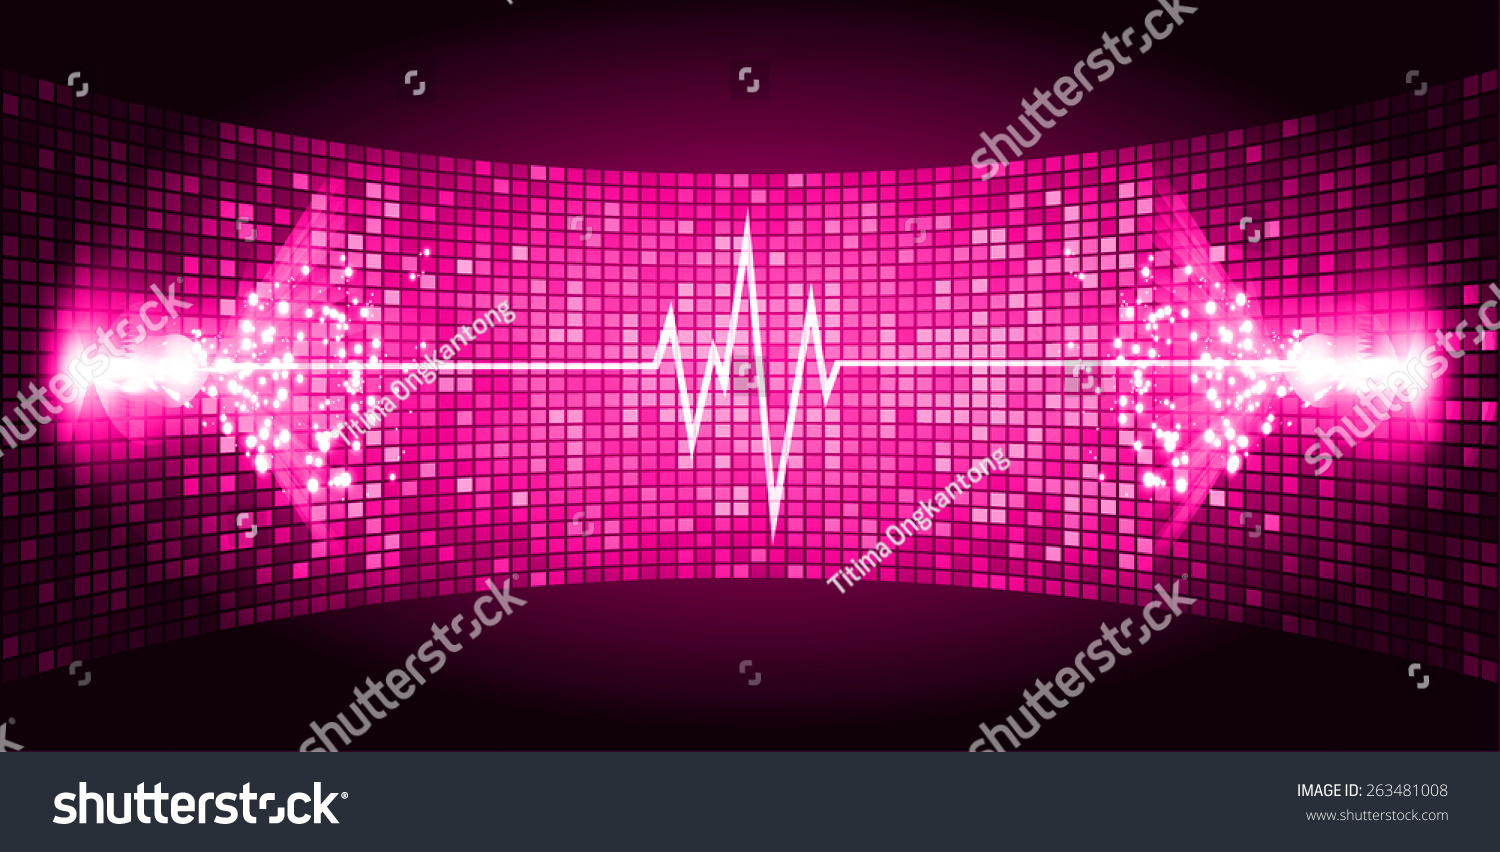 Dark Pink Sound Wave Background Suitable As A Backdrop For ...